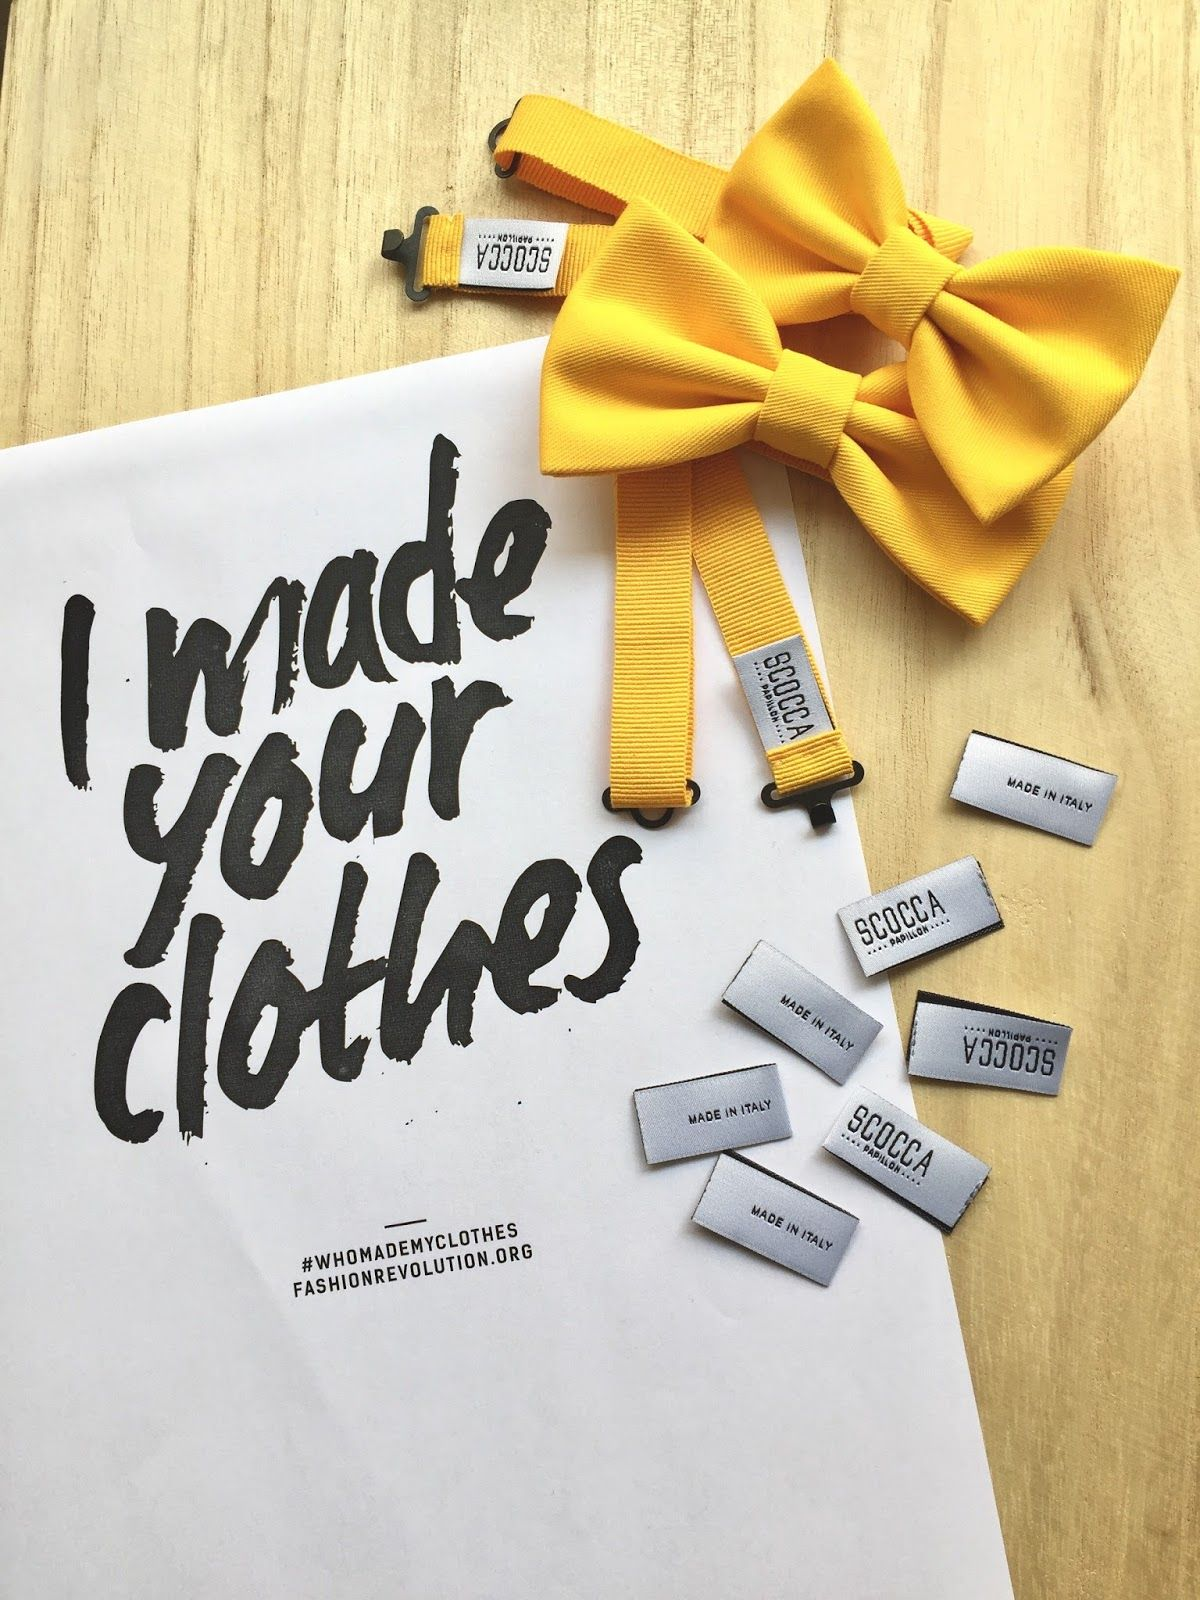 ScoccaPapillon.etsy.com #whomademyclothes #imadeyourclothes